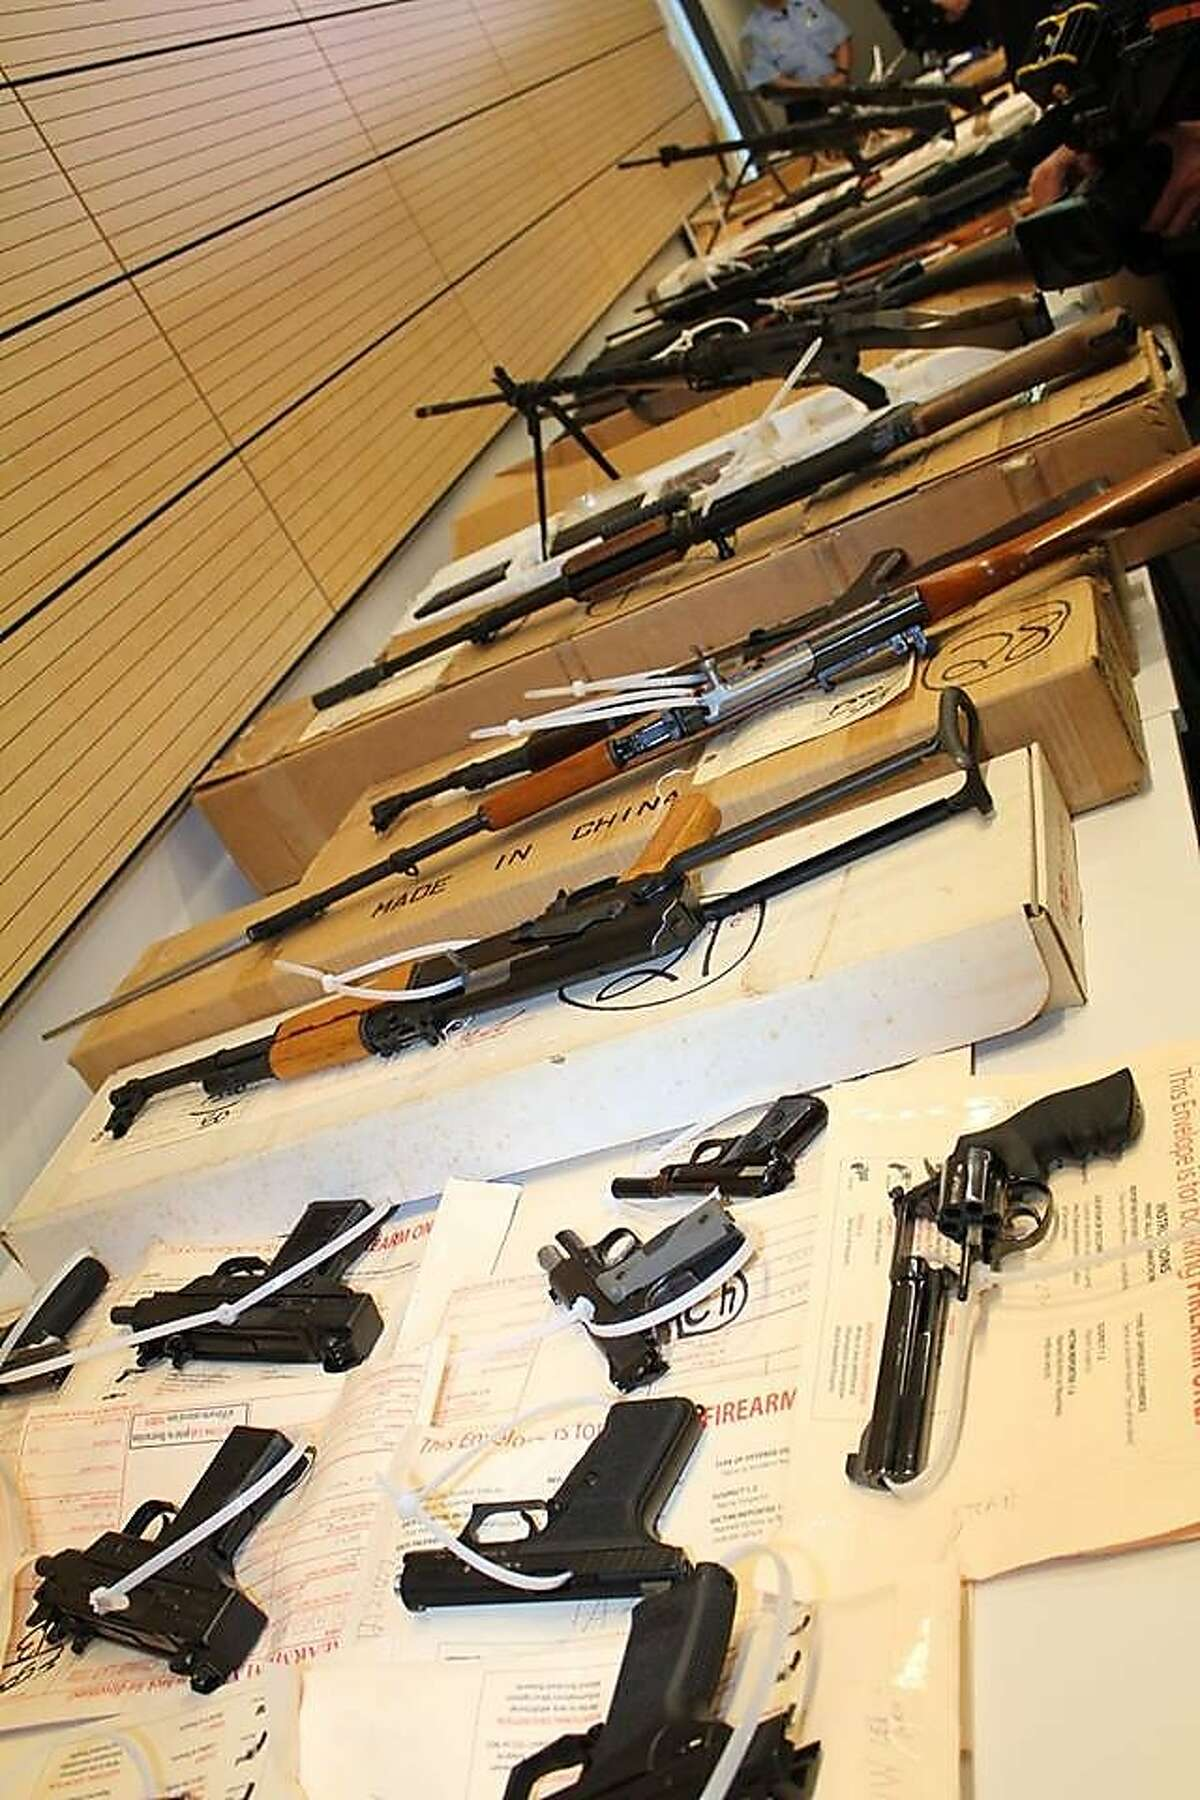 San Francisco police showed off guns seized from a robbery suspect at a news conference on June 10, 2015.